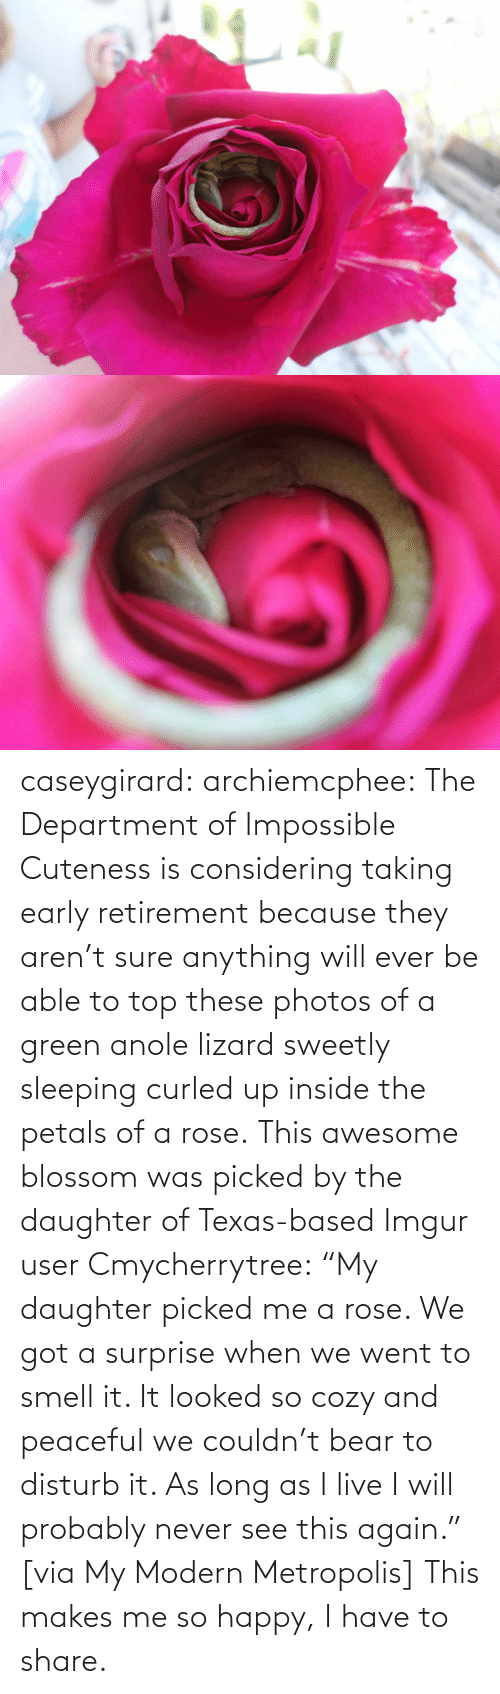 "using: caseygirard:  archiemcphee:   The Department of Impossible Cuteness is considering taking early retirement because they aren't sure anything will ever be able to top these photos of a green anole lizard sweetly sleeping curled up inside the petals of a rose. This awesome blossom was picked by the daughter of Texas-based Imgur user Cmycherrytree: ""My daughter picked me a rose. We got a surprise when we went to smell it. It looked so cozy and peaceful we couldn't bear to disturb it. As long as I live I will probably never see this again."" [via My Modern Metropolis]   This makes me so happy, I have to share."